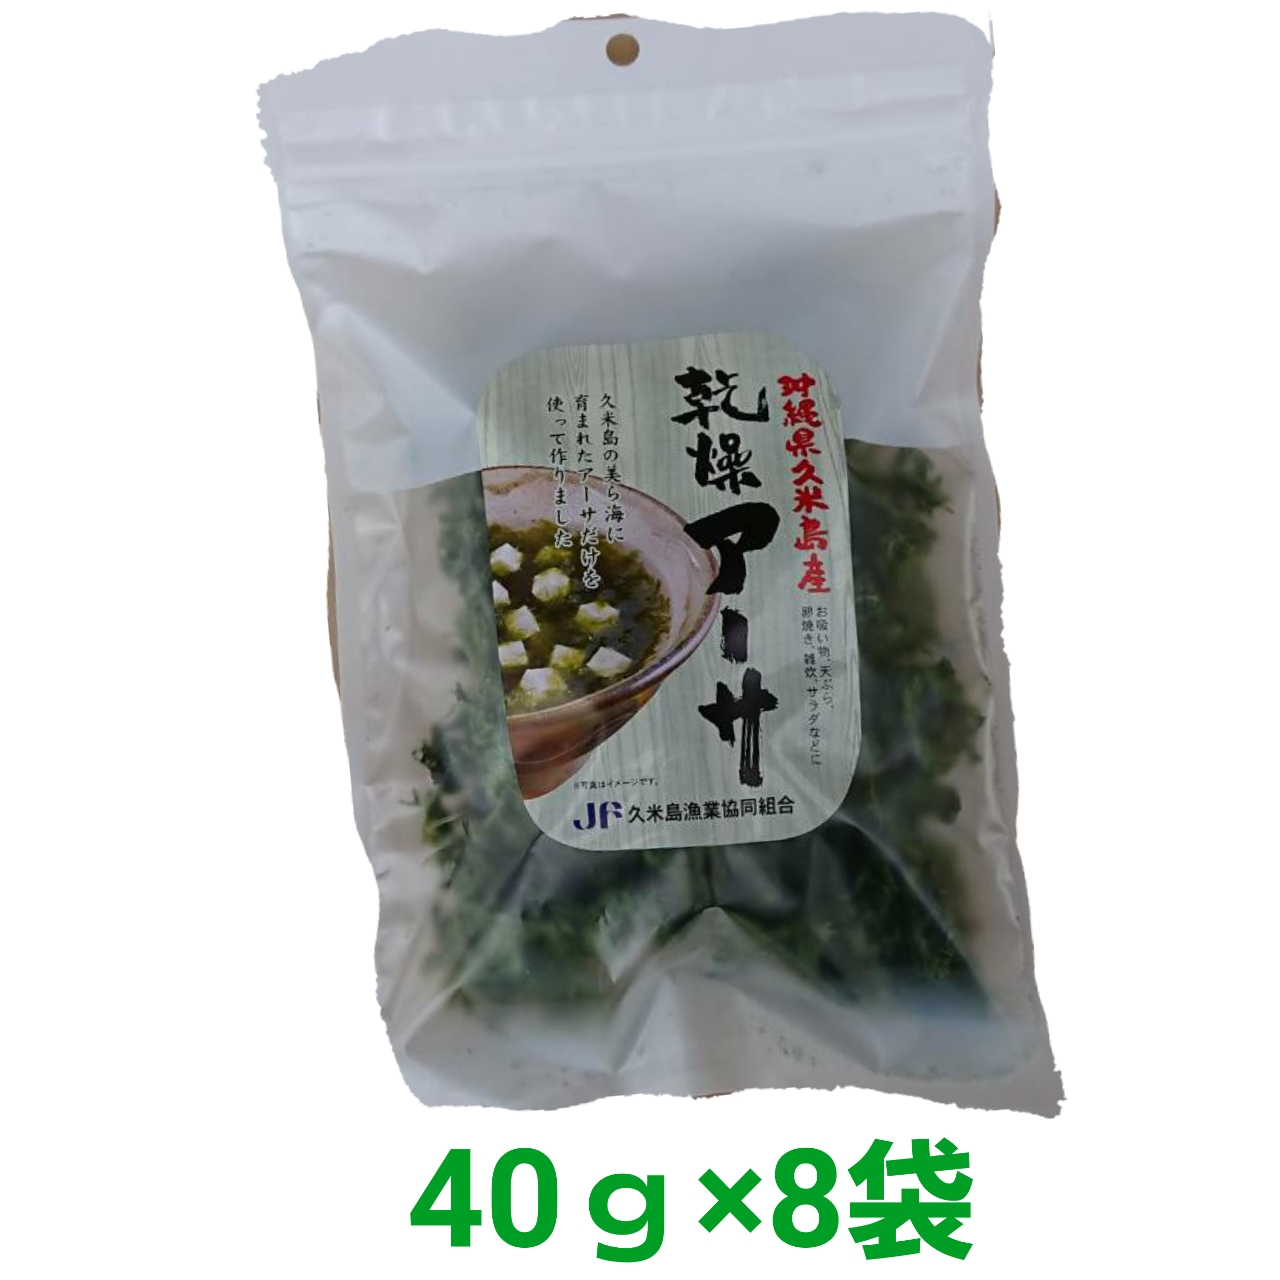 item_kansou_arsa_40g8pc